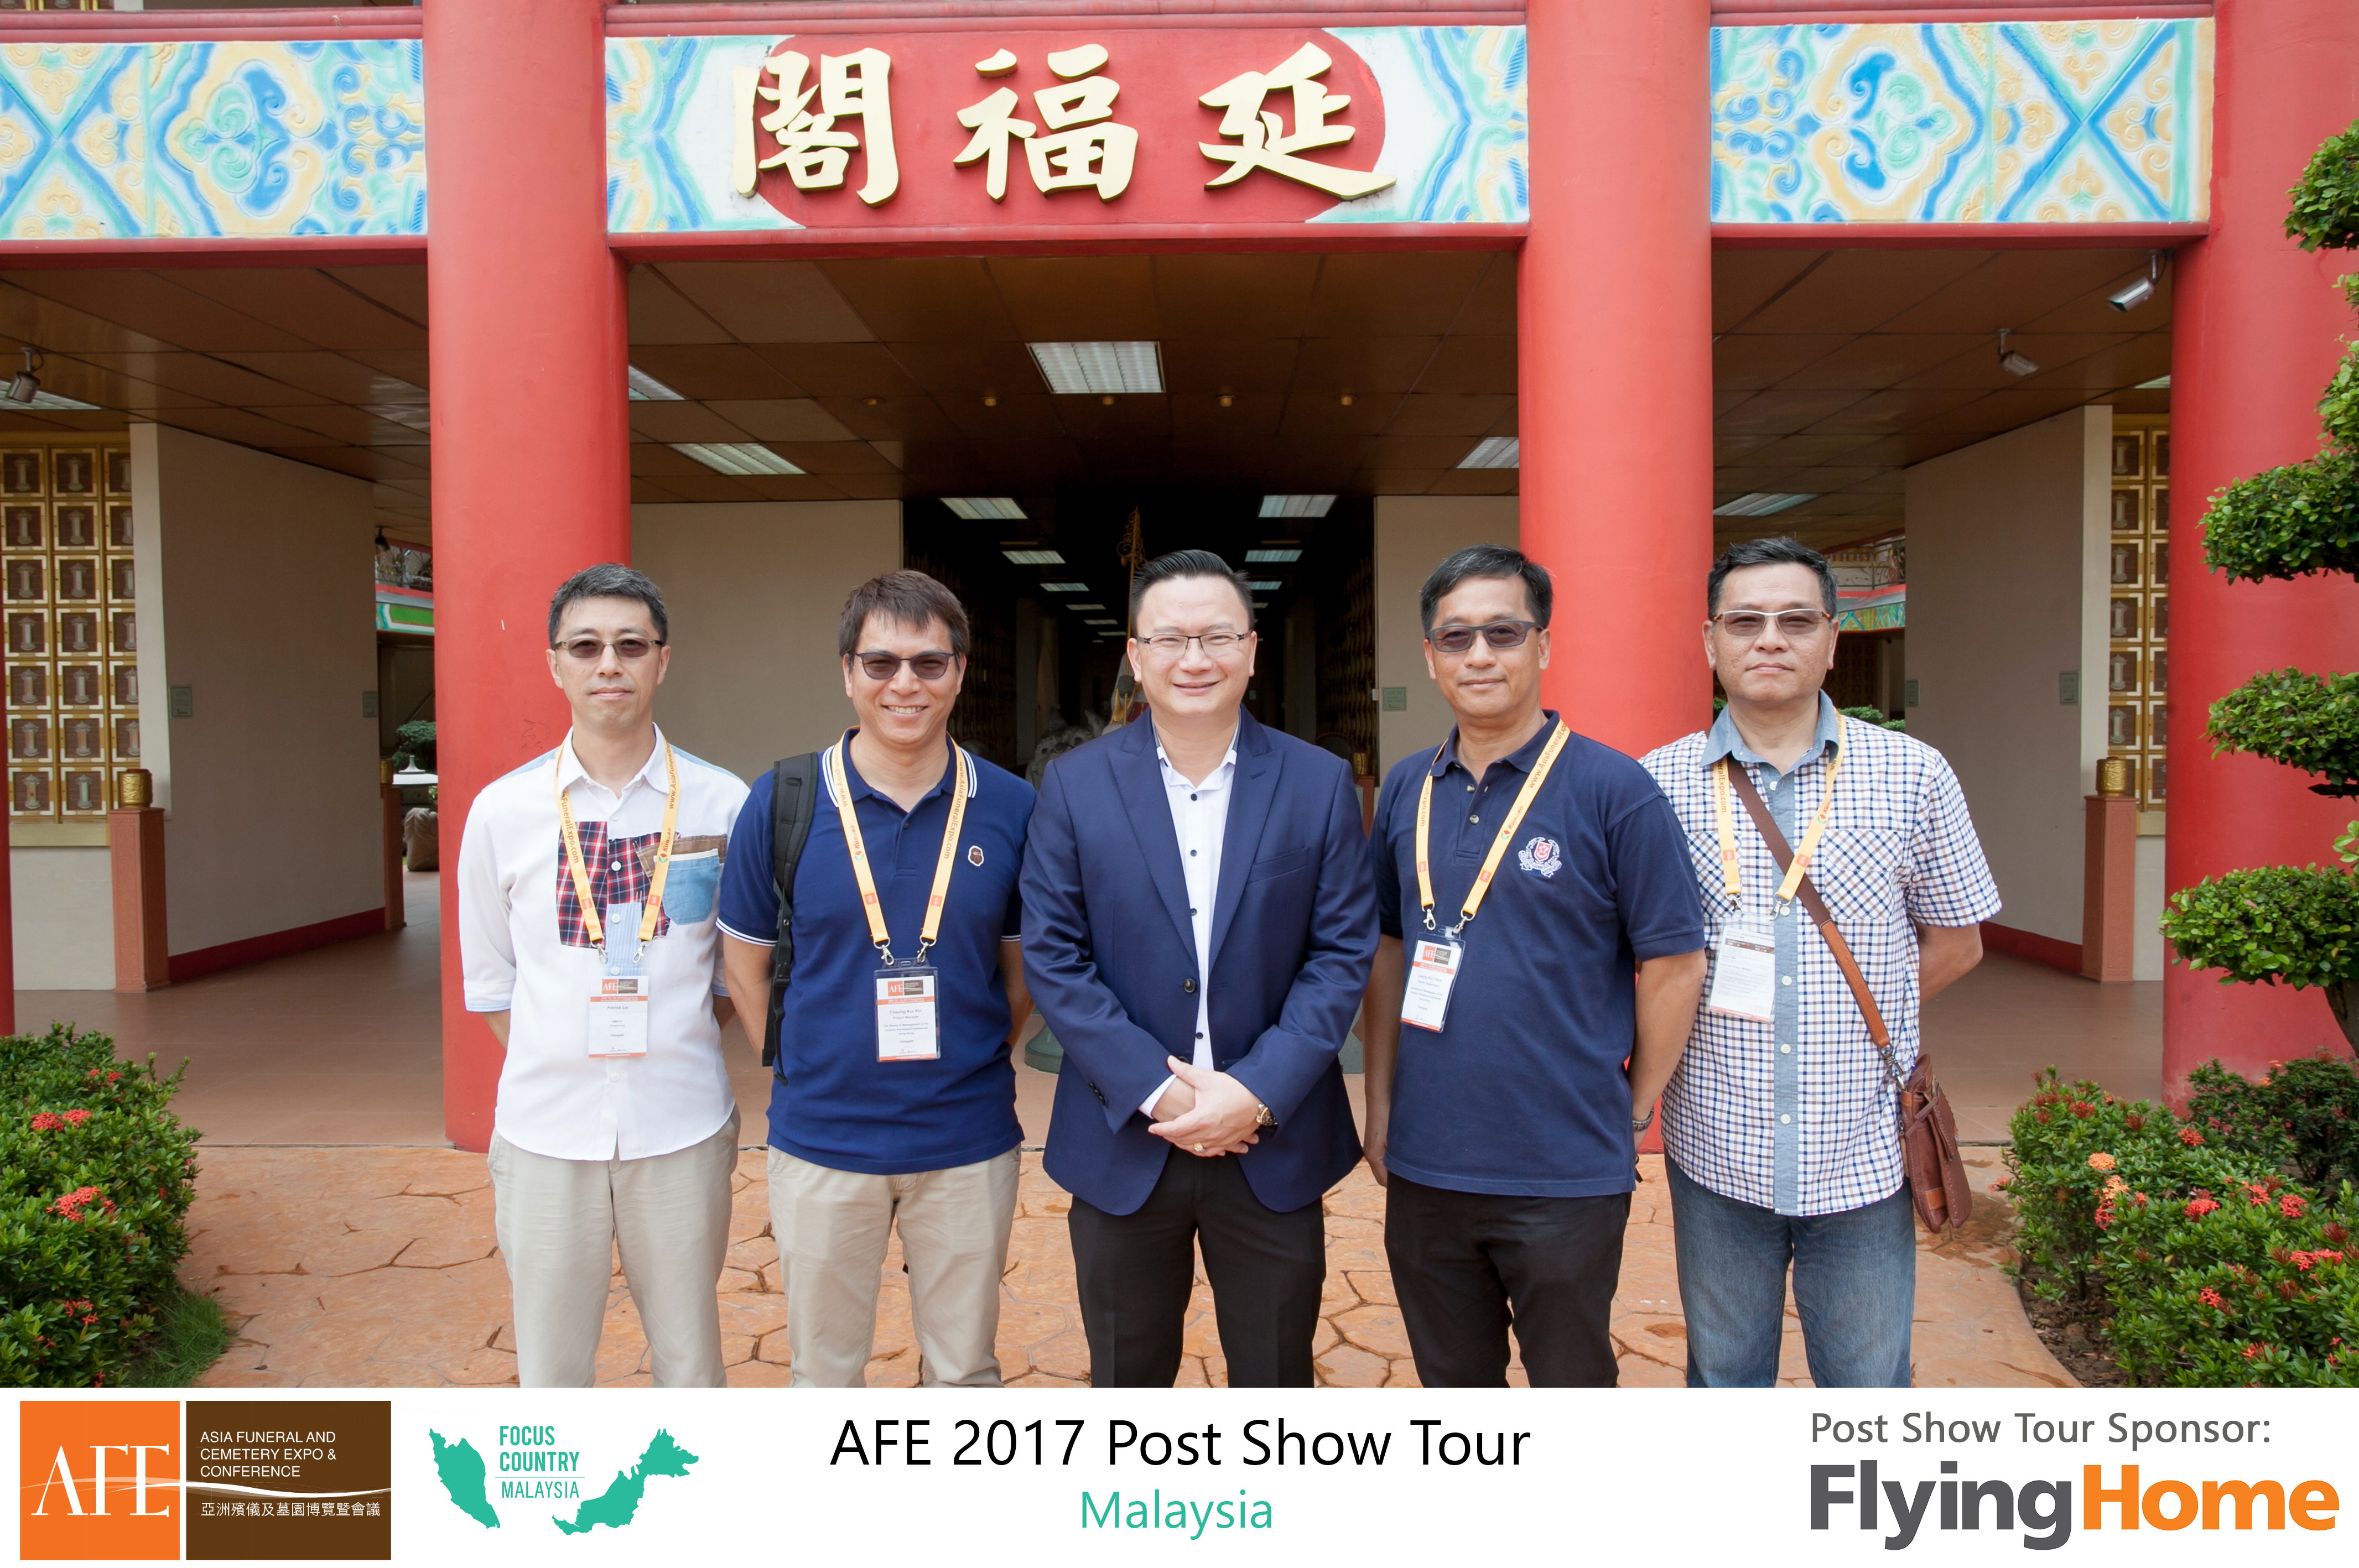 AFE Post Show Tour 2017 Day 4 - 42